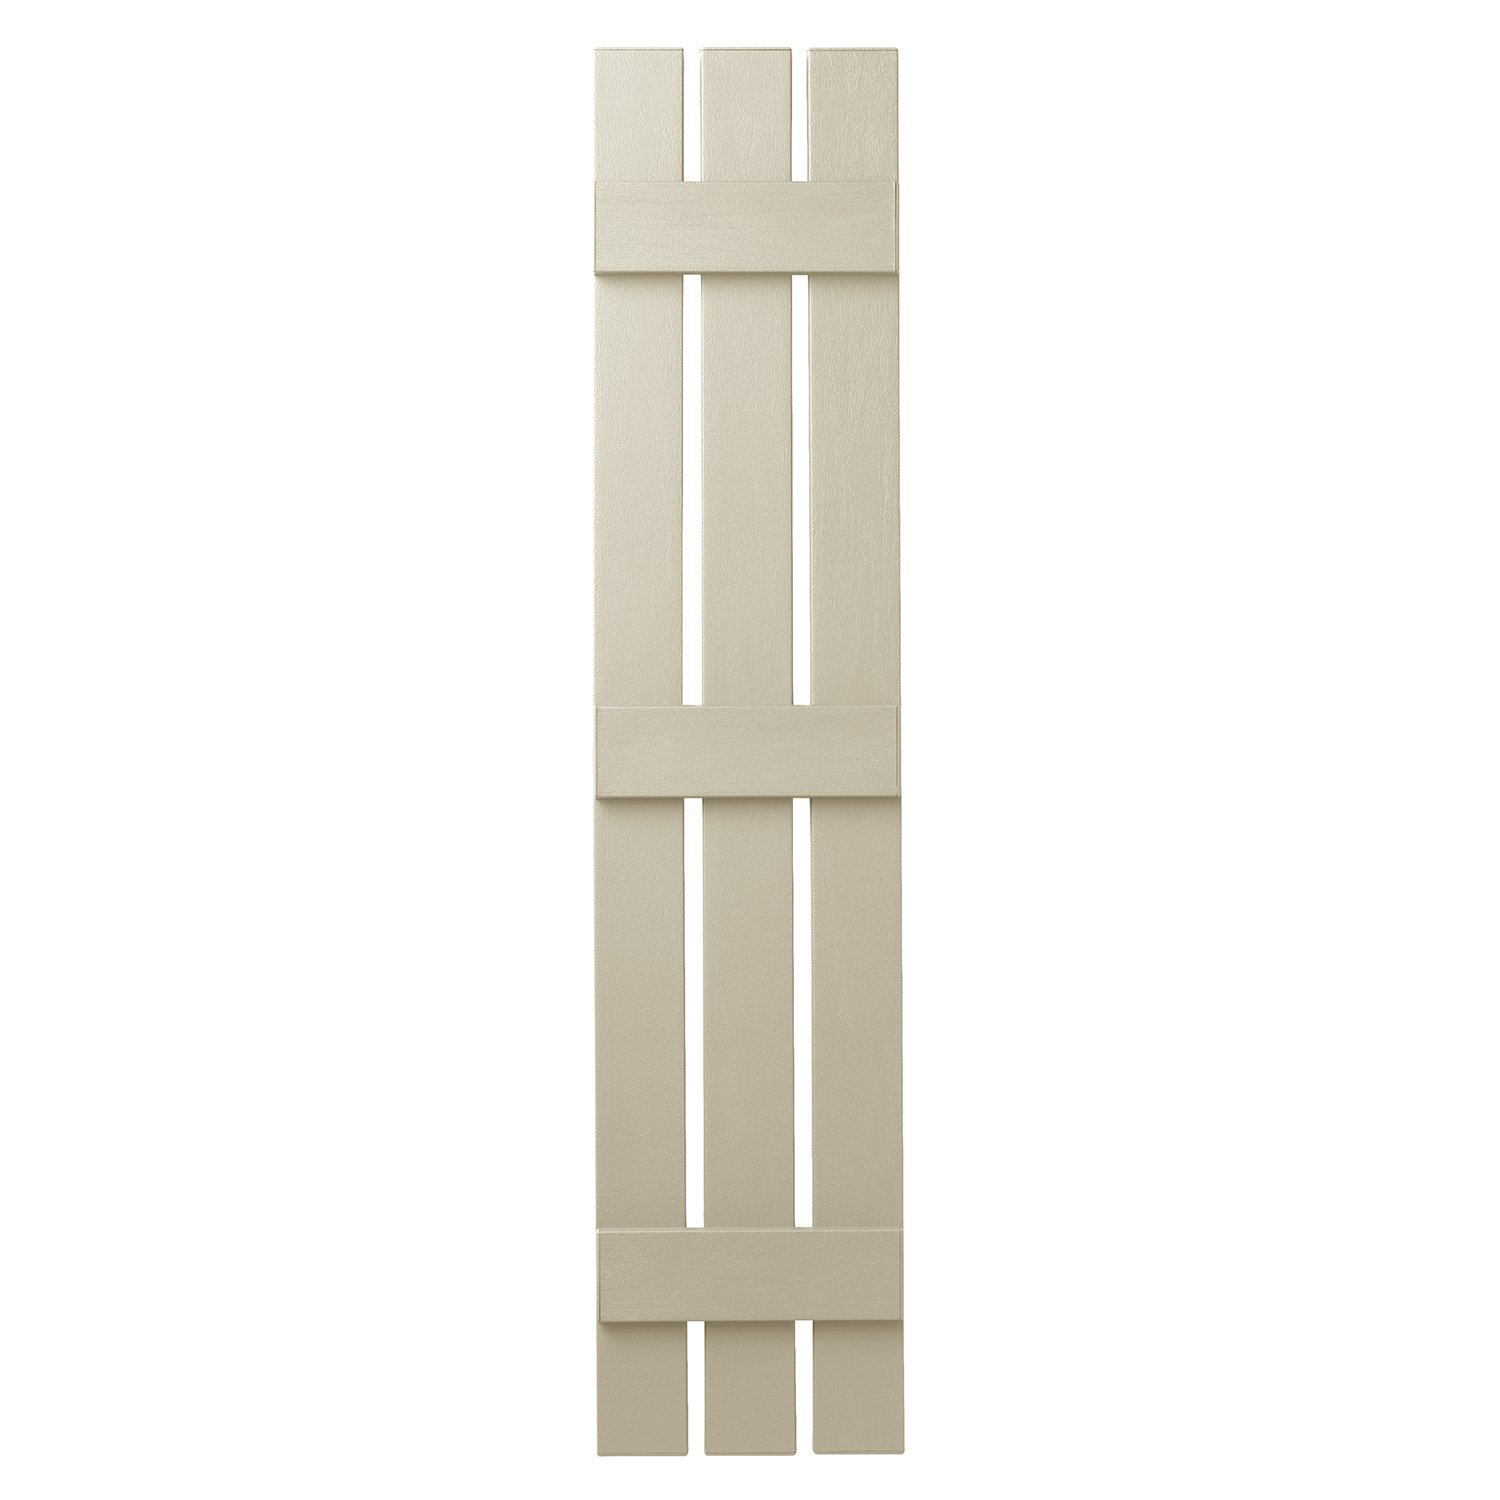 Ply Gem Shutters and Accents VIN301263 CRM 3 Open Board and Batten Shutter, Sand Dollar